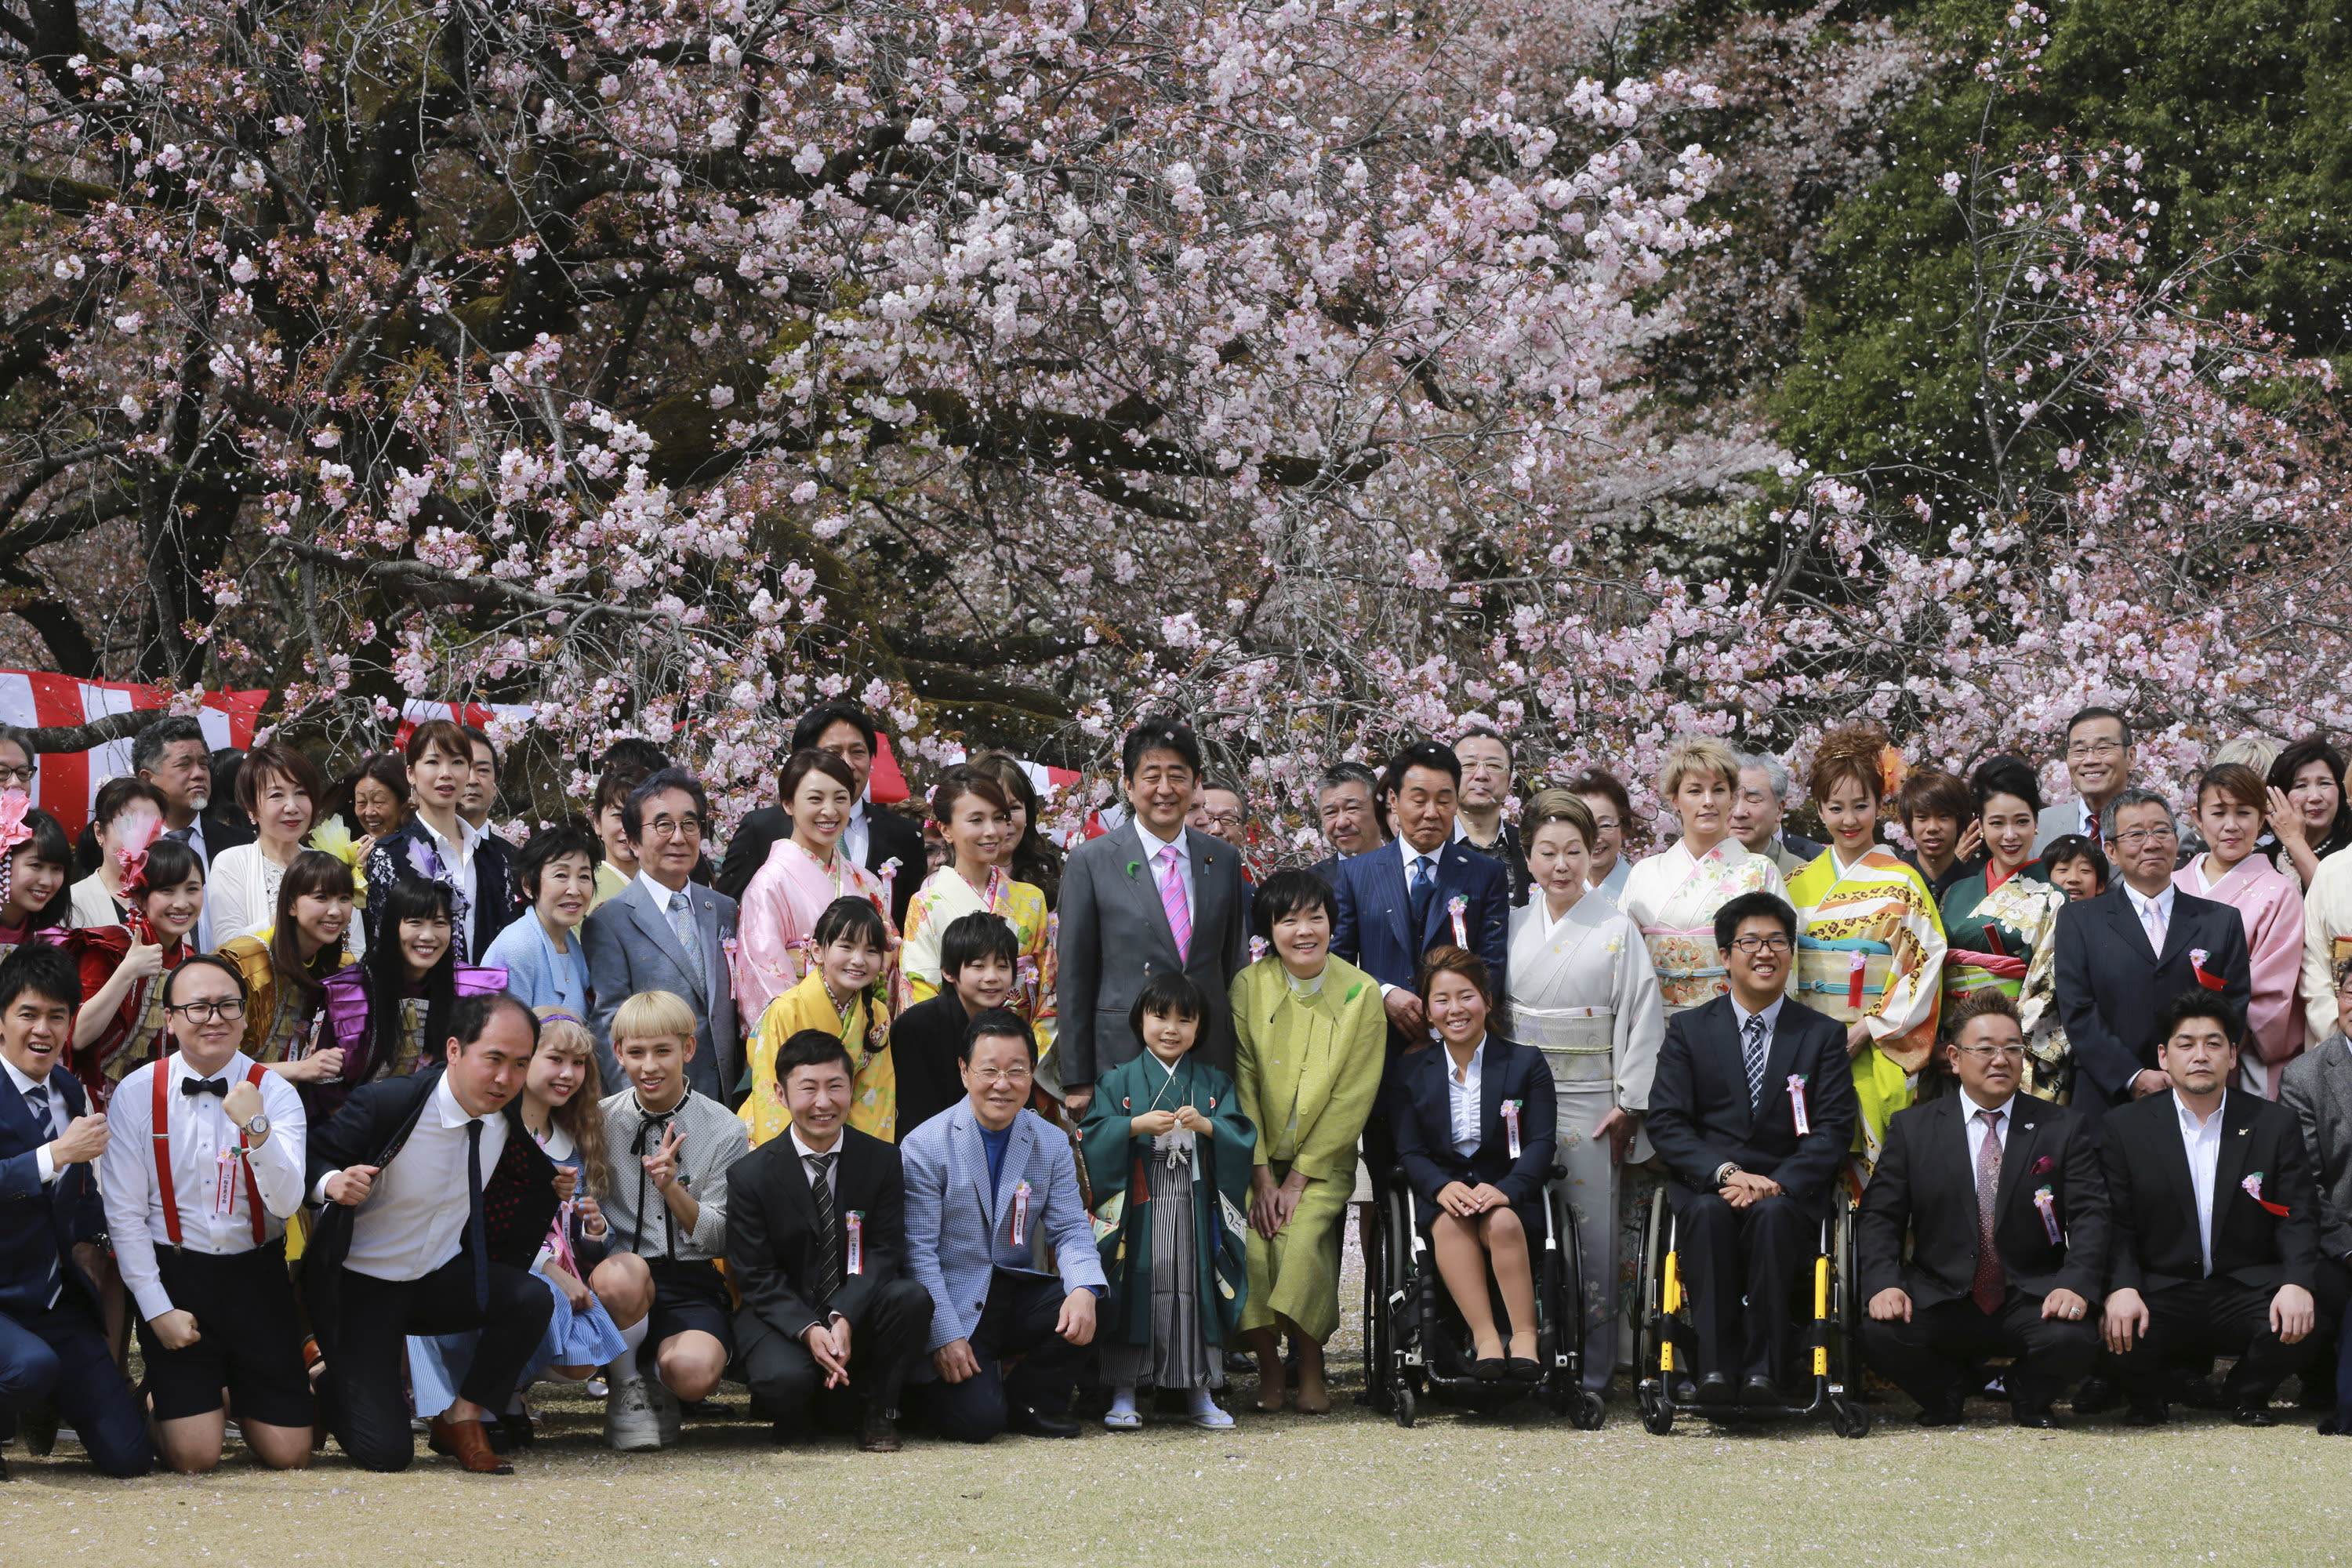 FILE - In this April 15, 2017, file photo, then Japanese Prime Minister Shinzo Abe, center with a pink tie, pose with Japanese artists, entertainers, athletes and other guests during a cherry blossom viewing party hosted by Abe at Shinjuku Gyoen National Garden in Tokyo. On Friday, Sept. 18, 2020, Japanese police arrested a man, who was invited to one of annual cherry blossom viewing parties hosted by the former Prime Minister Abe, in a massive fraud involving thousands of elderly customers(AP Photo/Eugene Hoshiko, File)